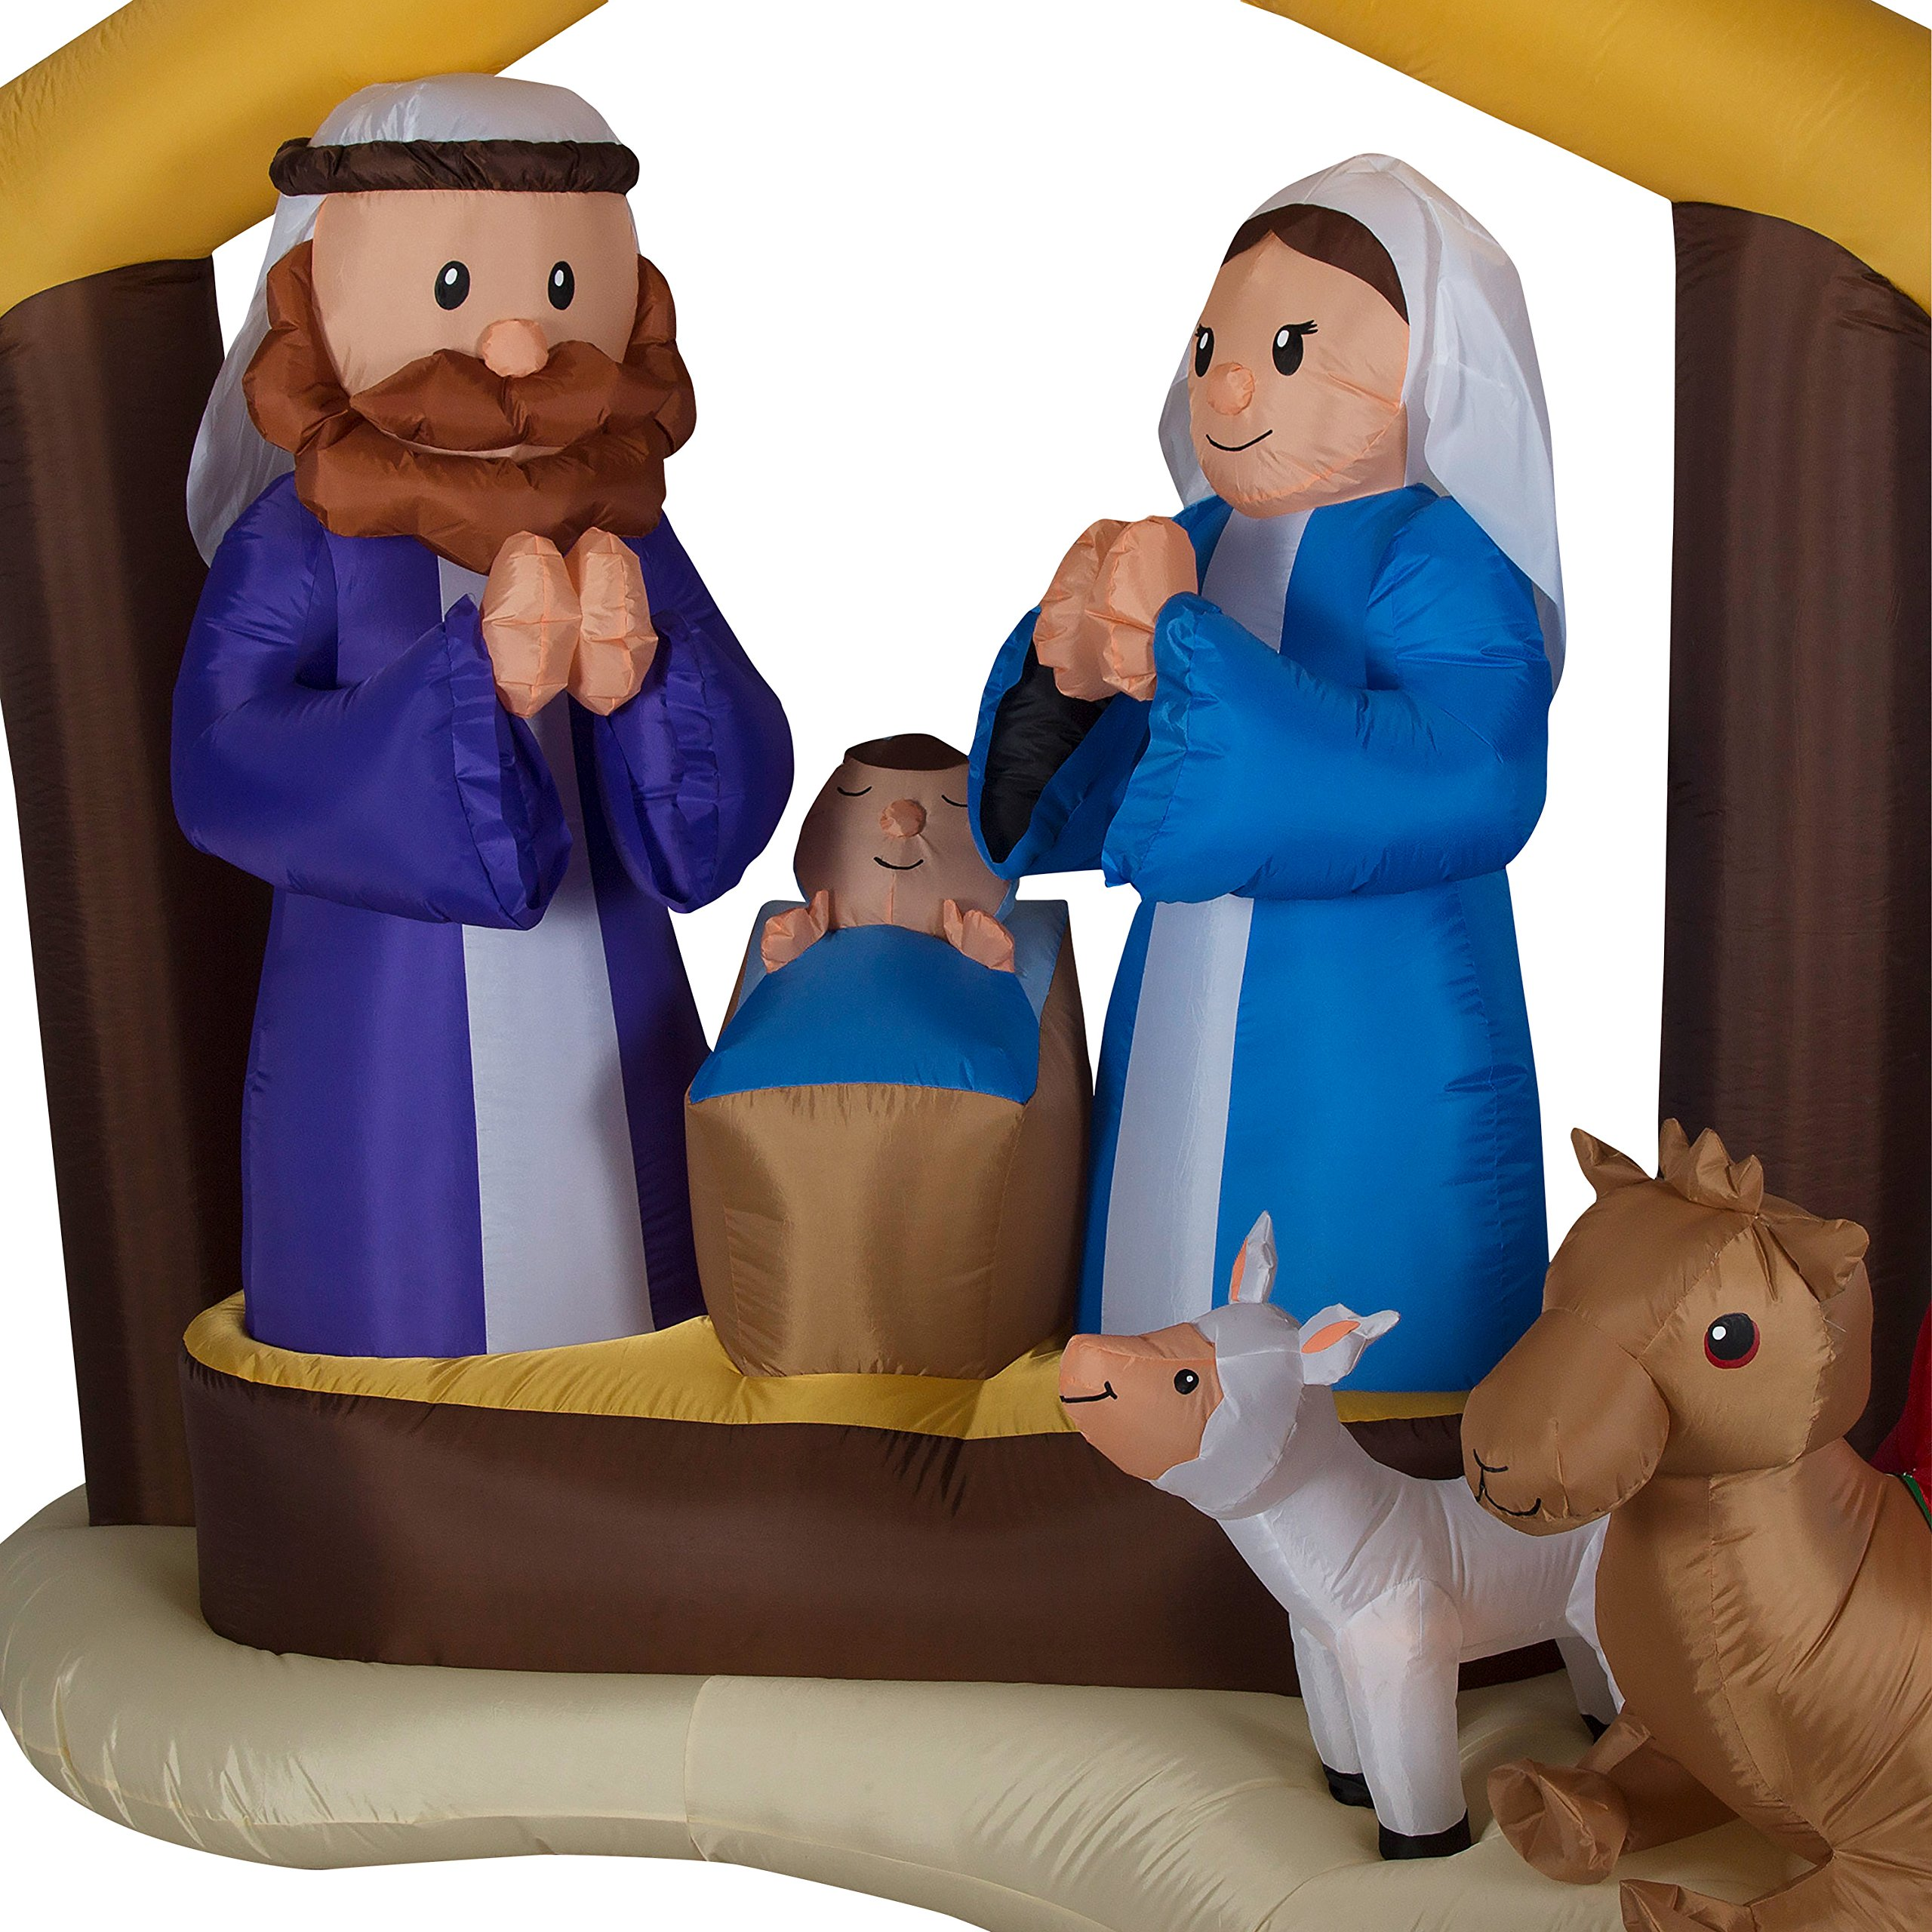 LightShow Airblown Inflatable Kaleidoscope Nativity Scene Outdoor Decoration by Gemmy (Image #2)